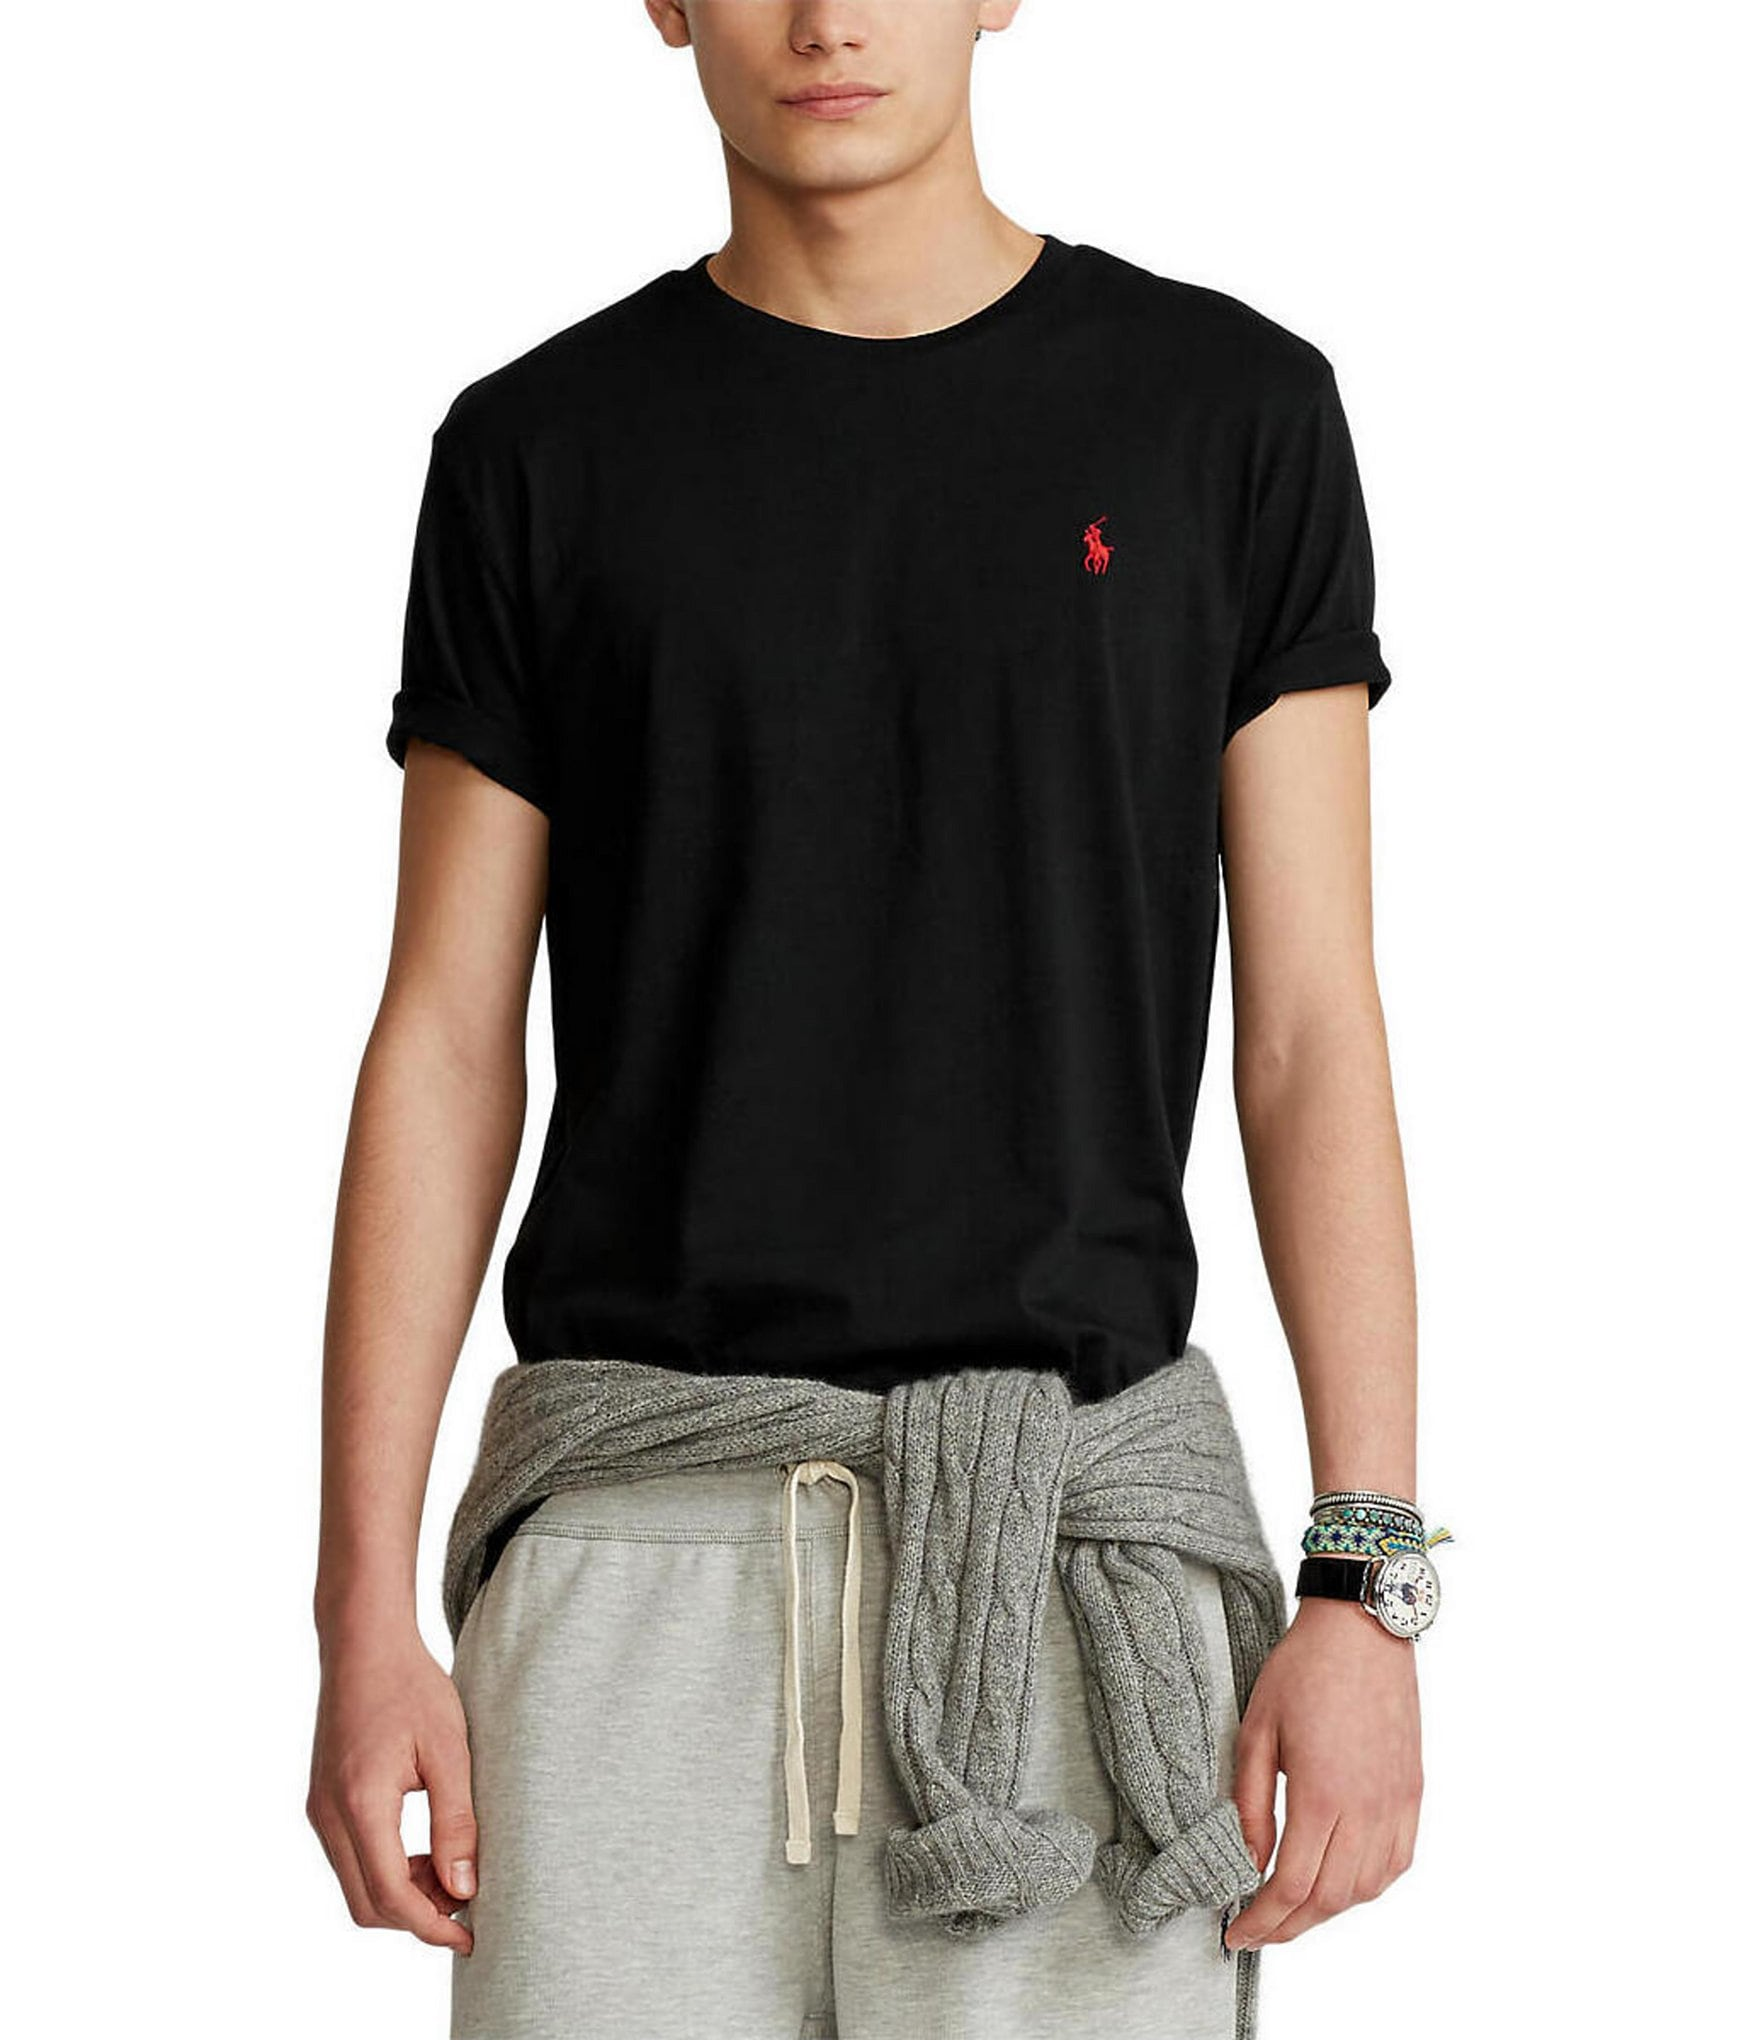 Polo Ralph Lauren Mens Clothing Apparel Dillards